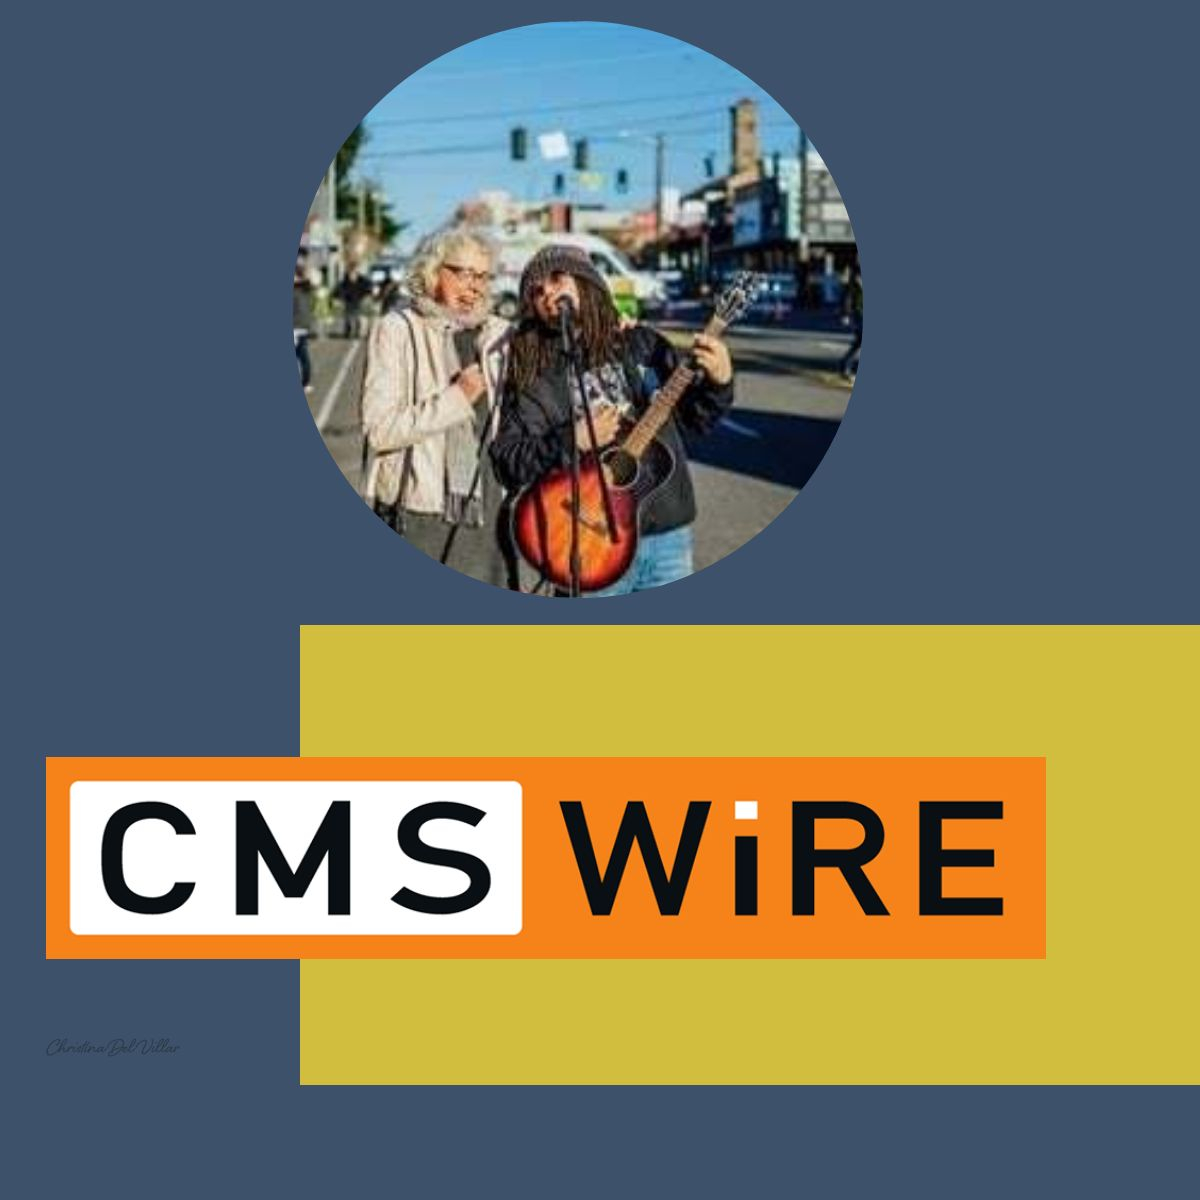 CMS Wire June 14, 2021